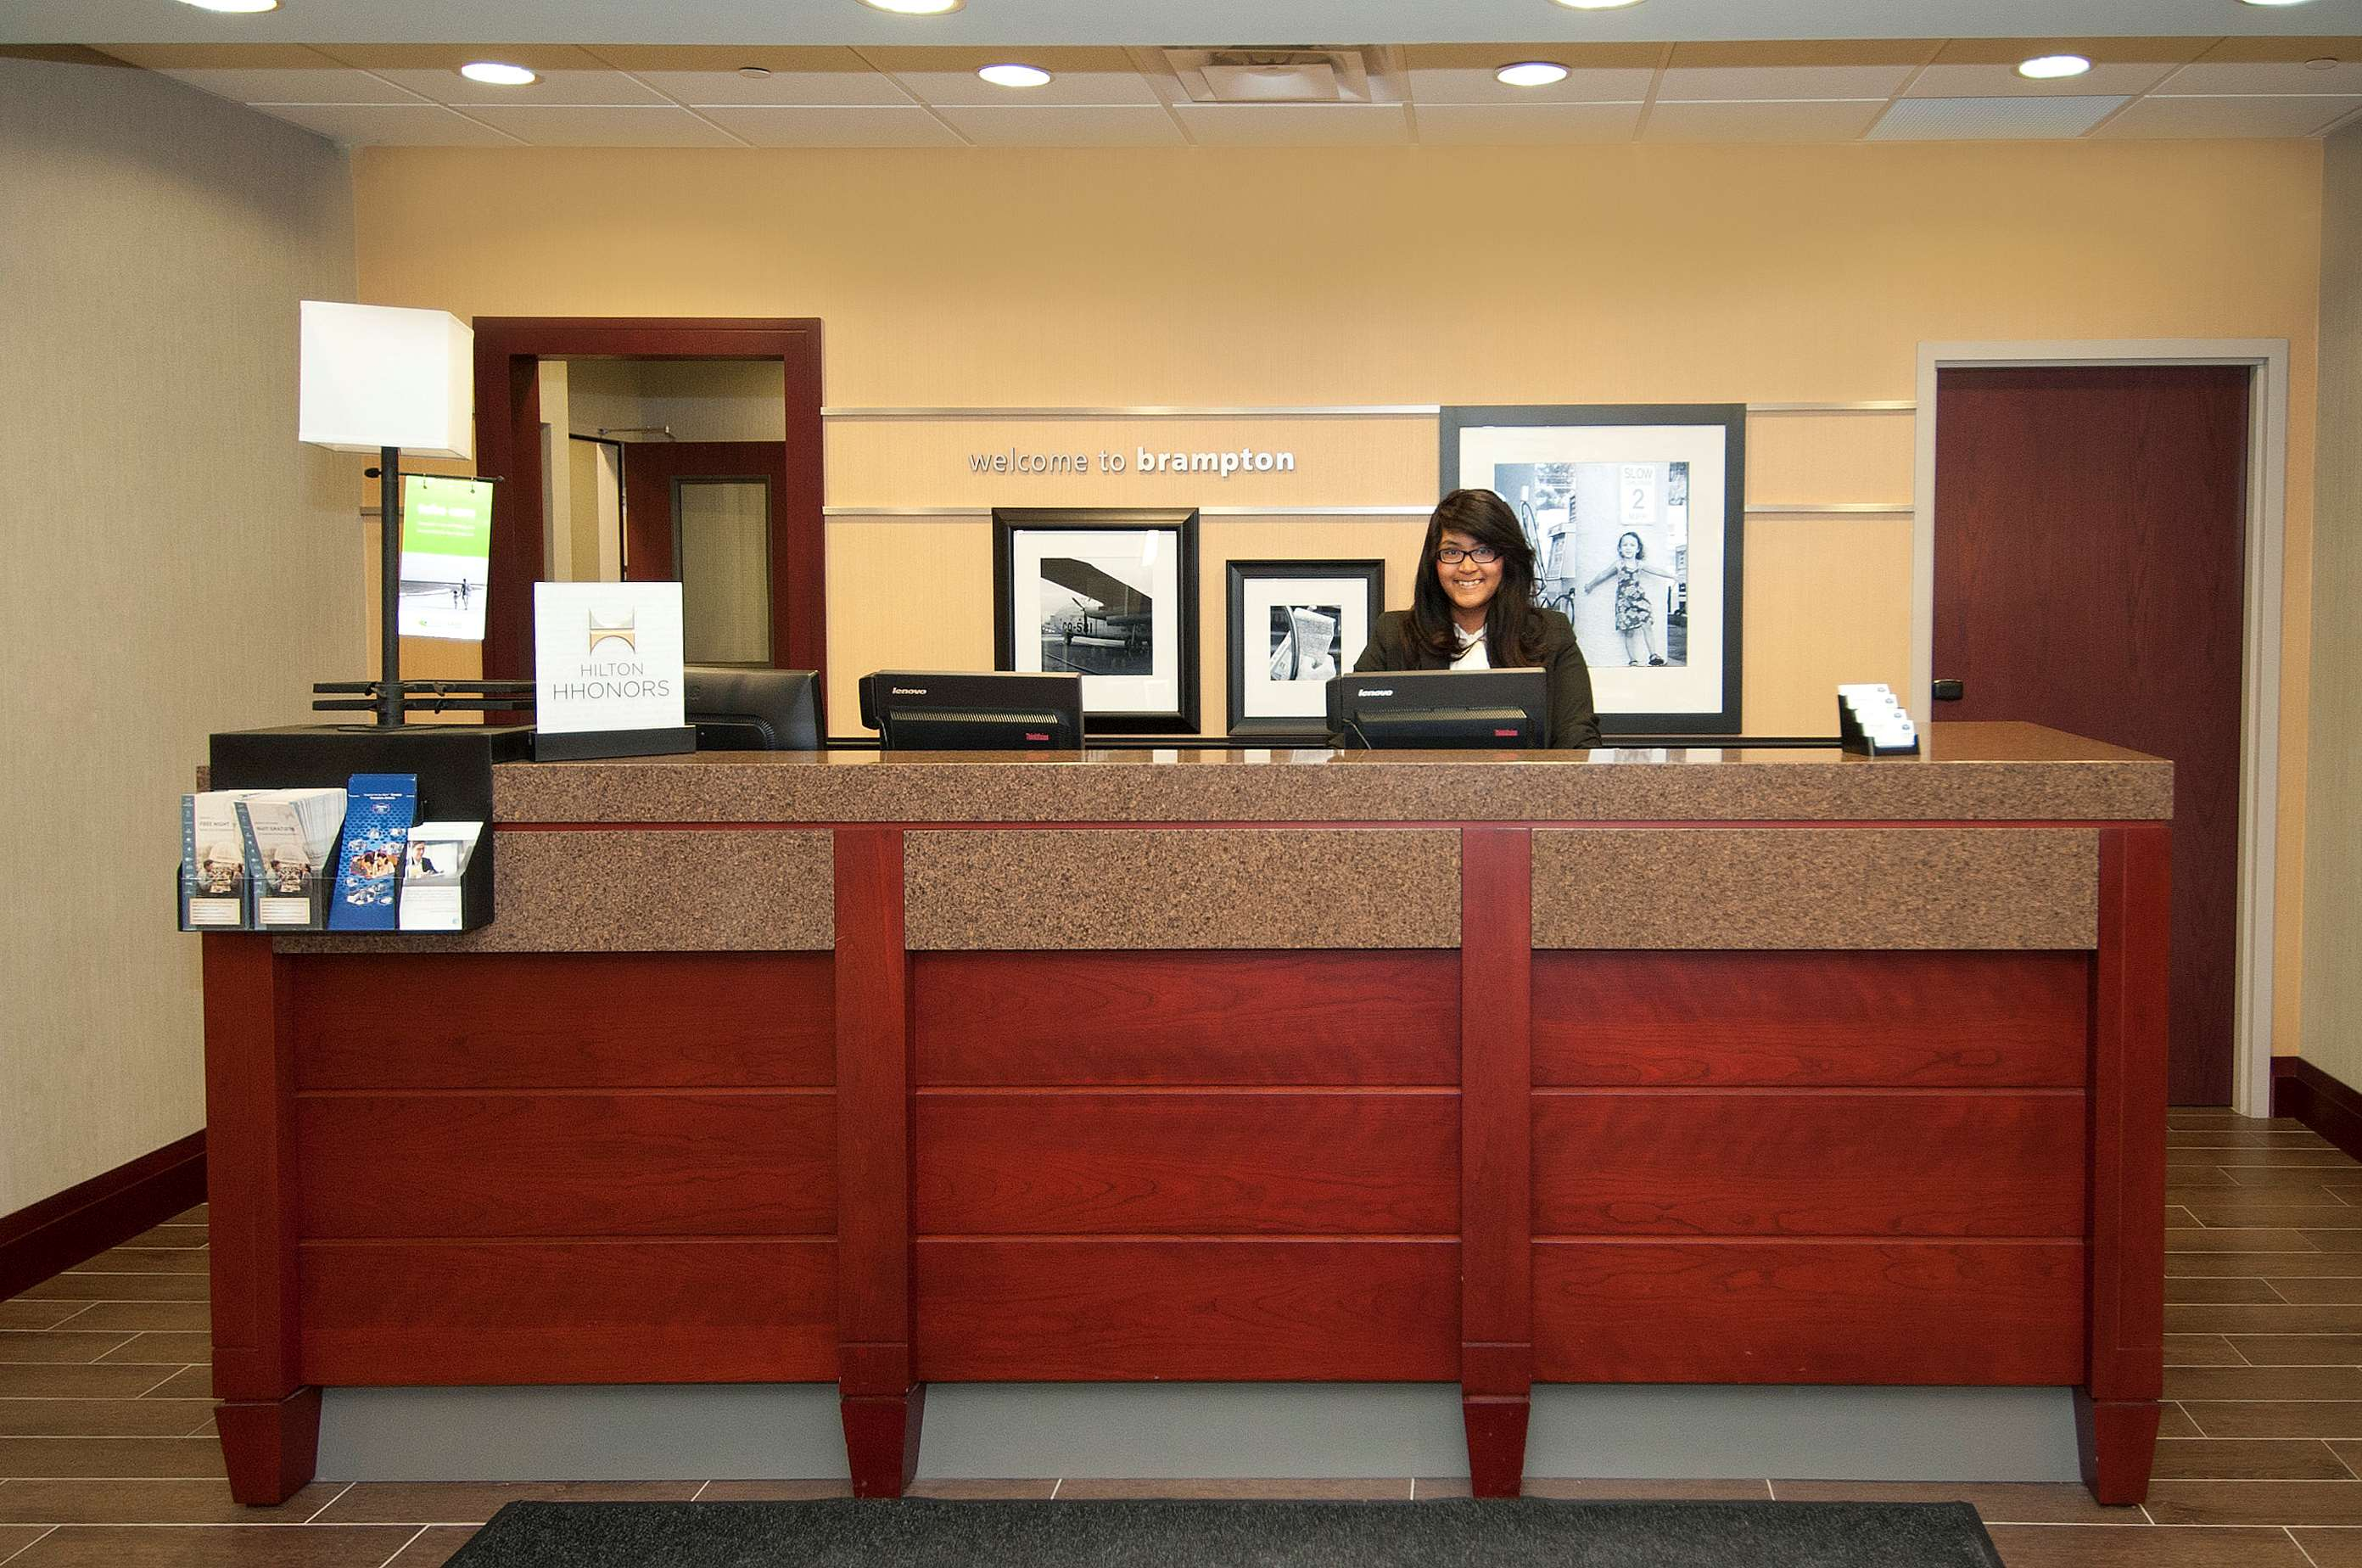 Hampton Inn by Hilton Brampton Toronto in Brampton: Reception